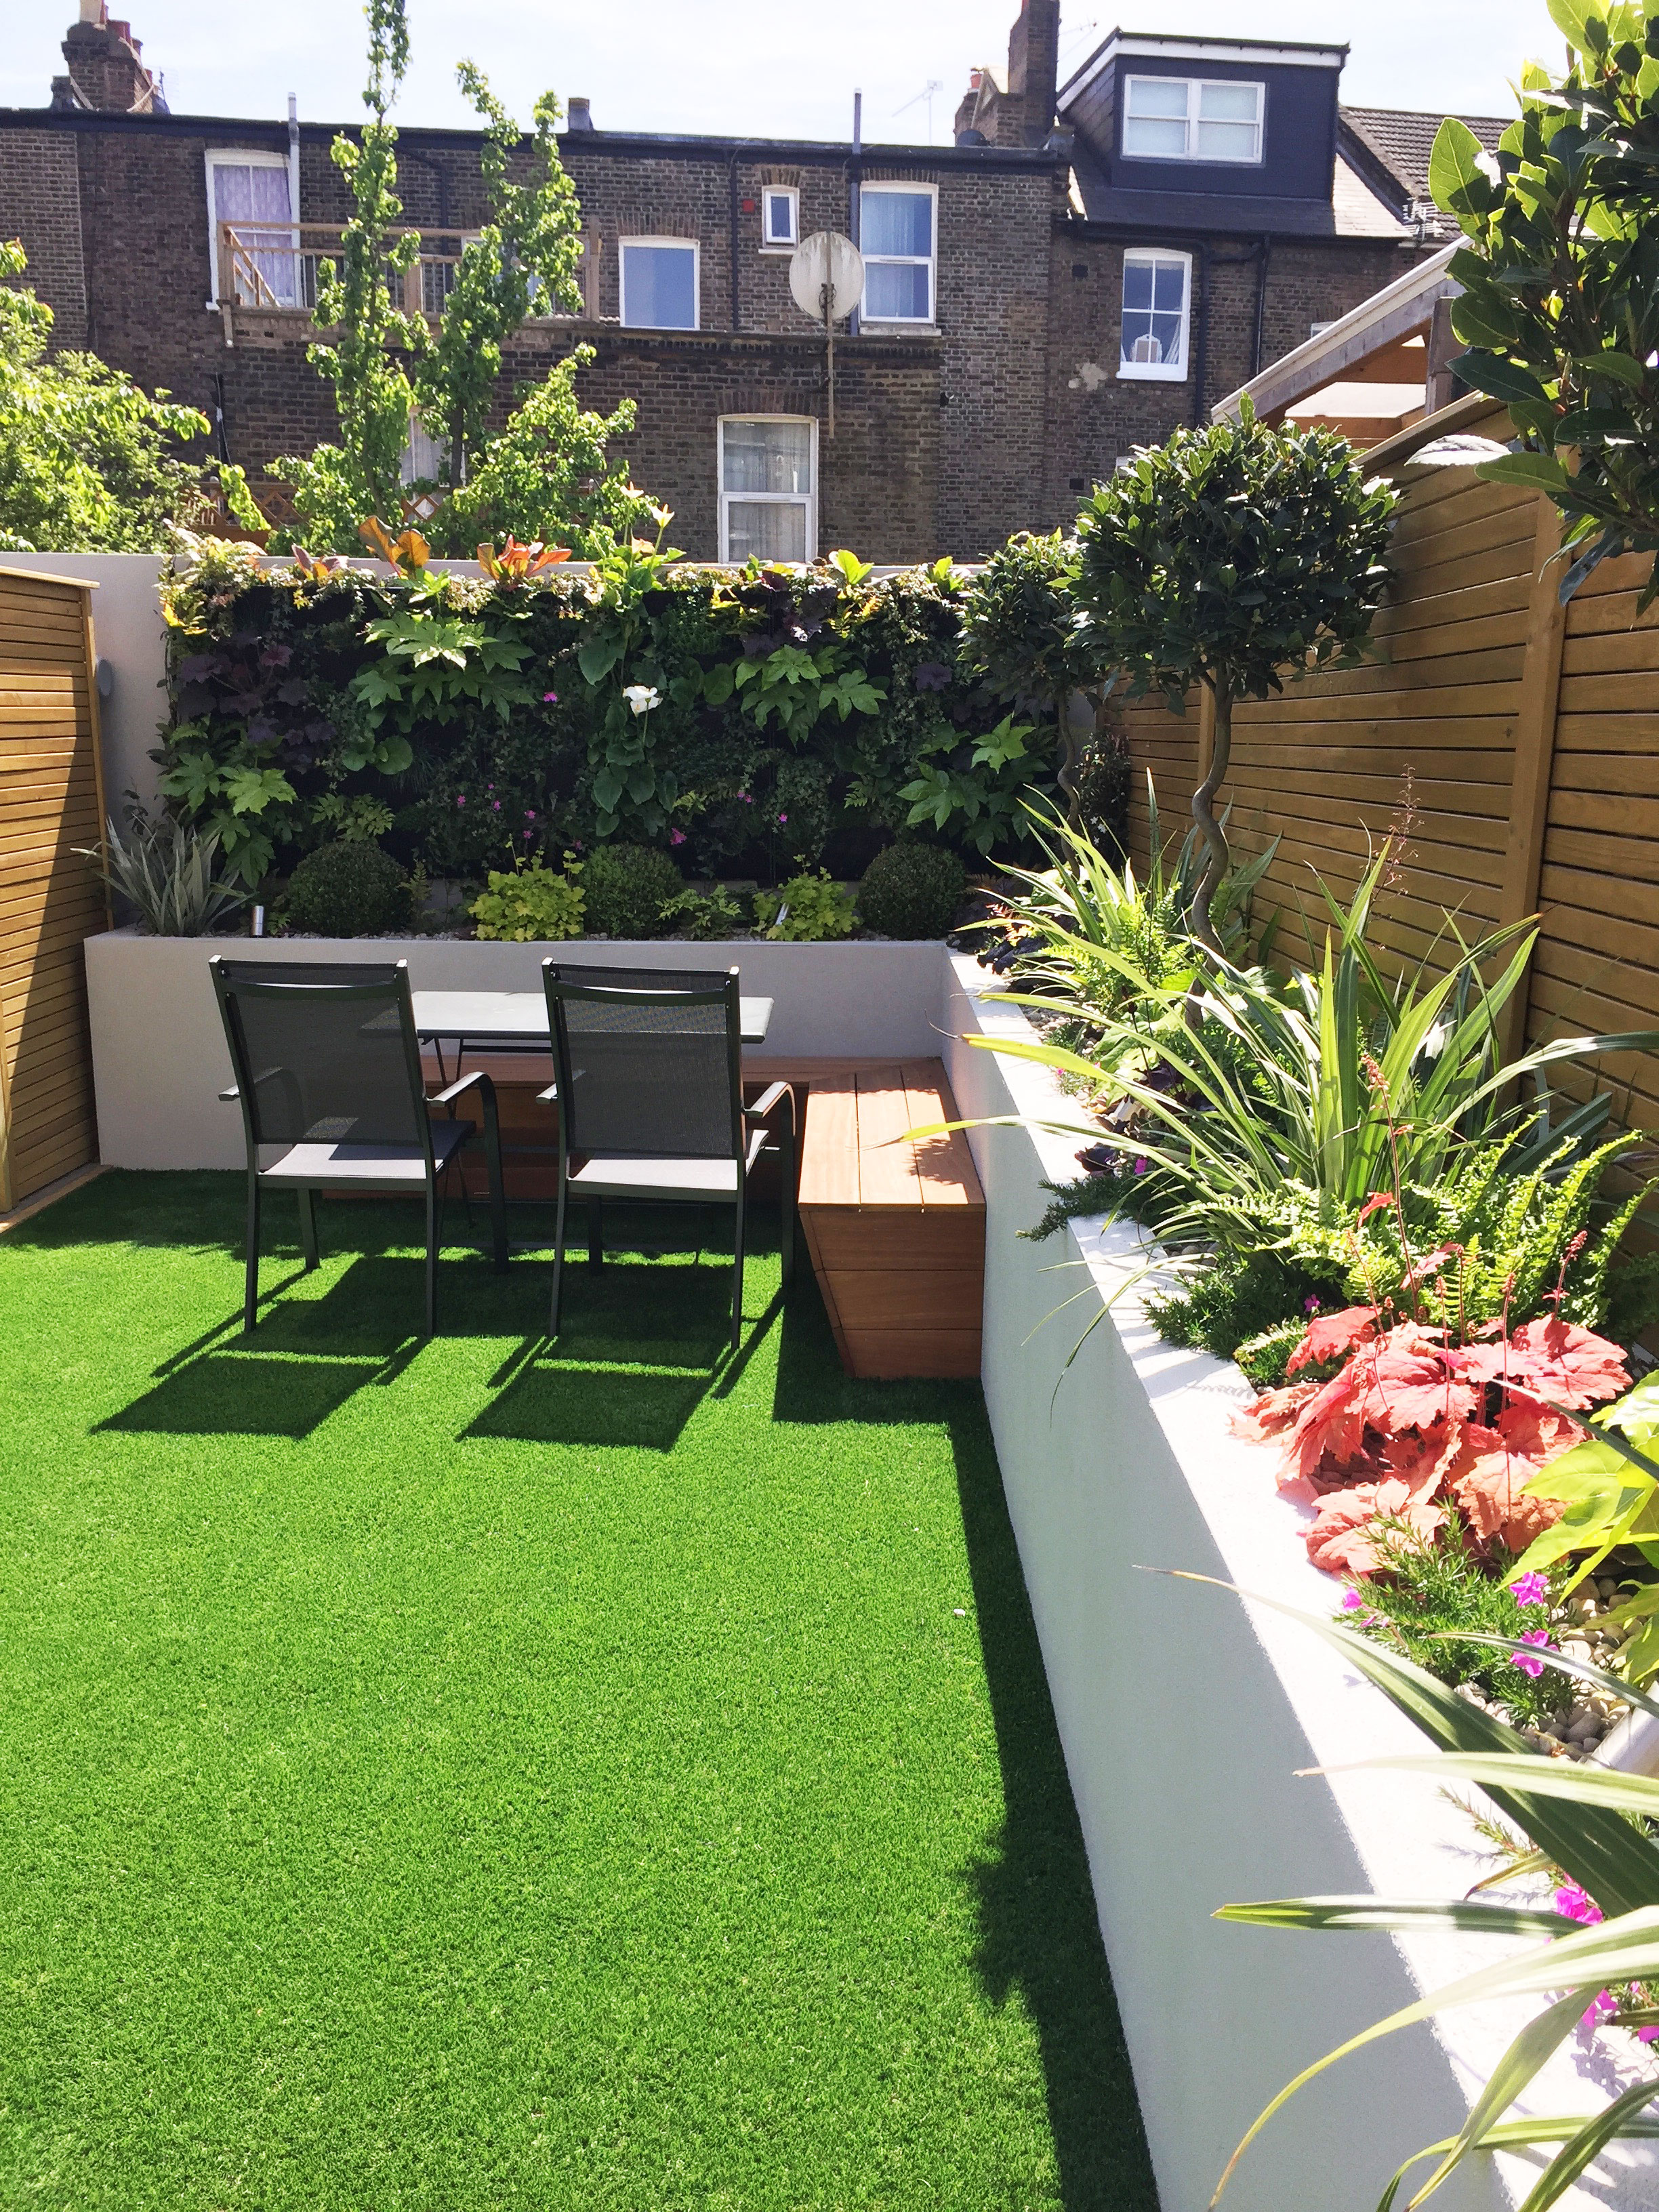 Living-wall-and-artificial-turf-Gallagher-gardens---Landscaping-Oxford.jpg